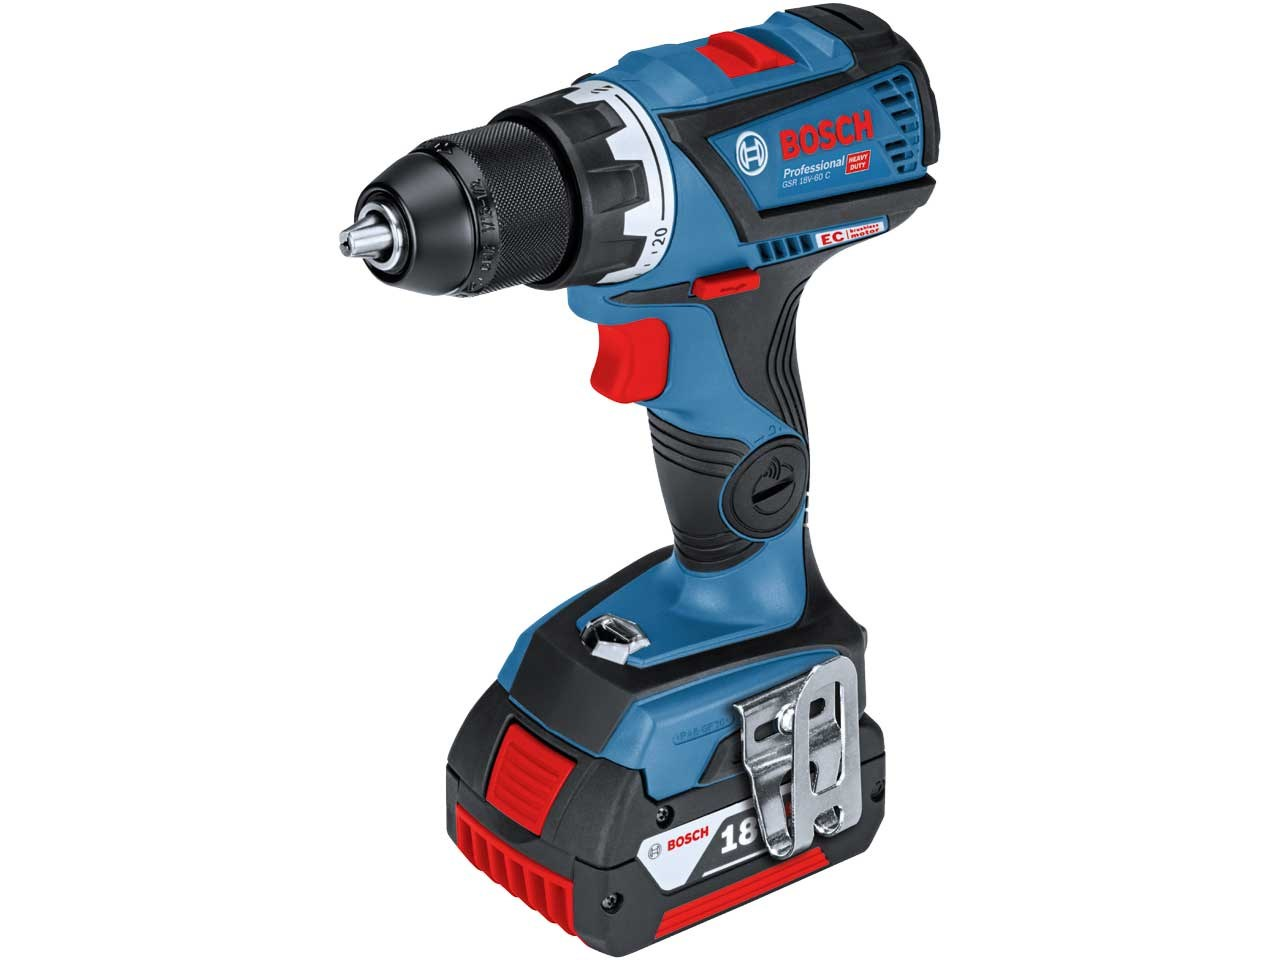 bosch gsr 18 v 60 18v dynamicseries brushless drill driver. Black Bedroom Furniture Sets. Home Design Ideas